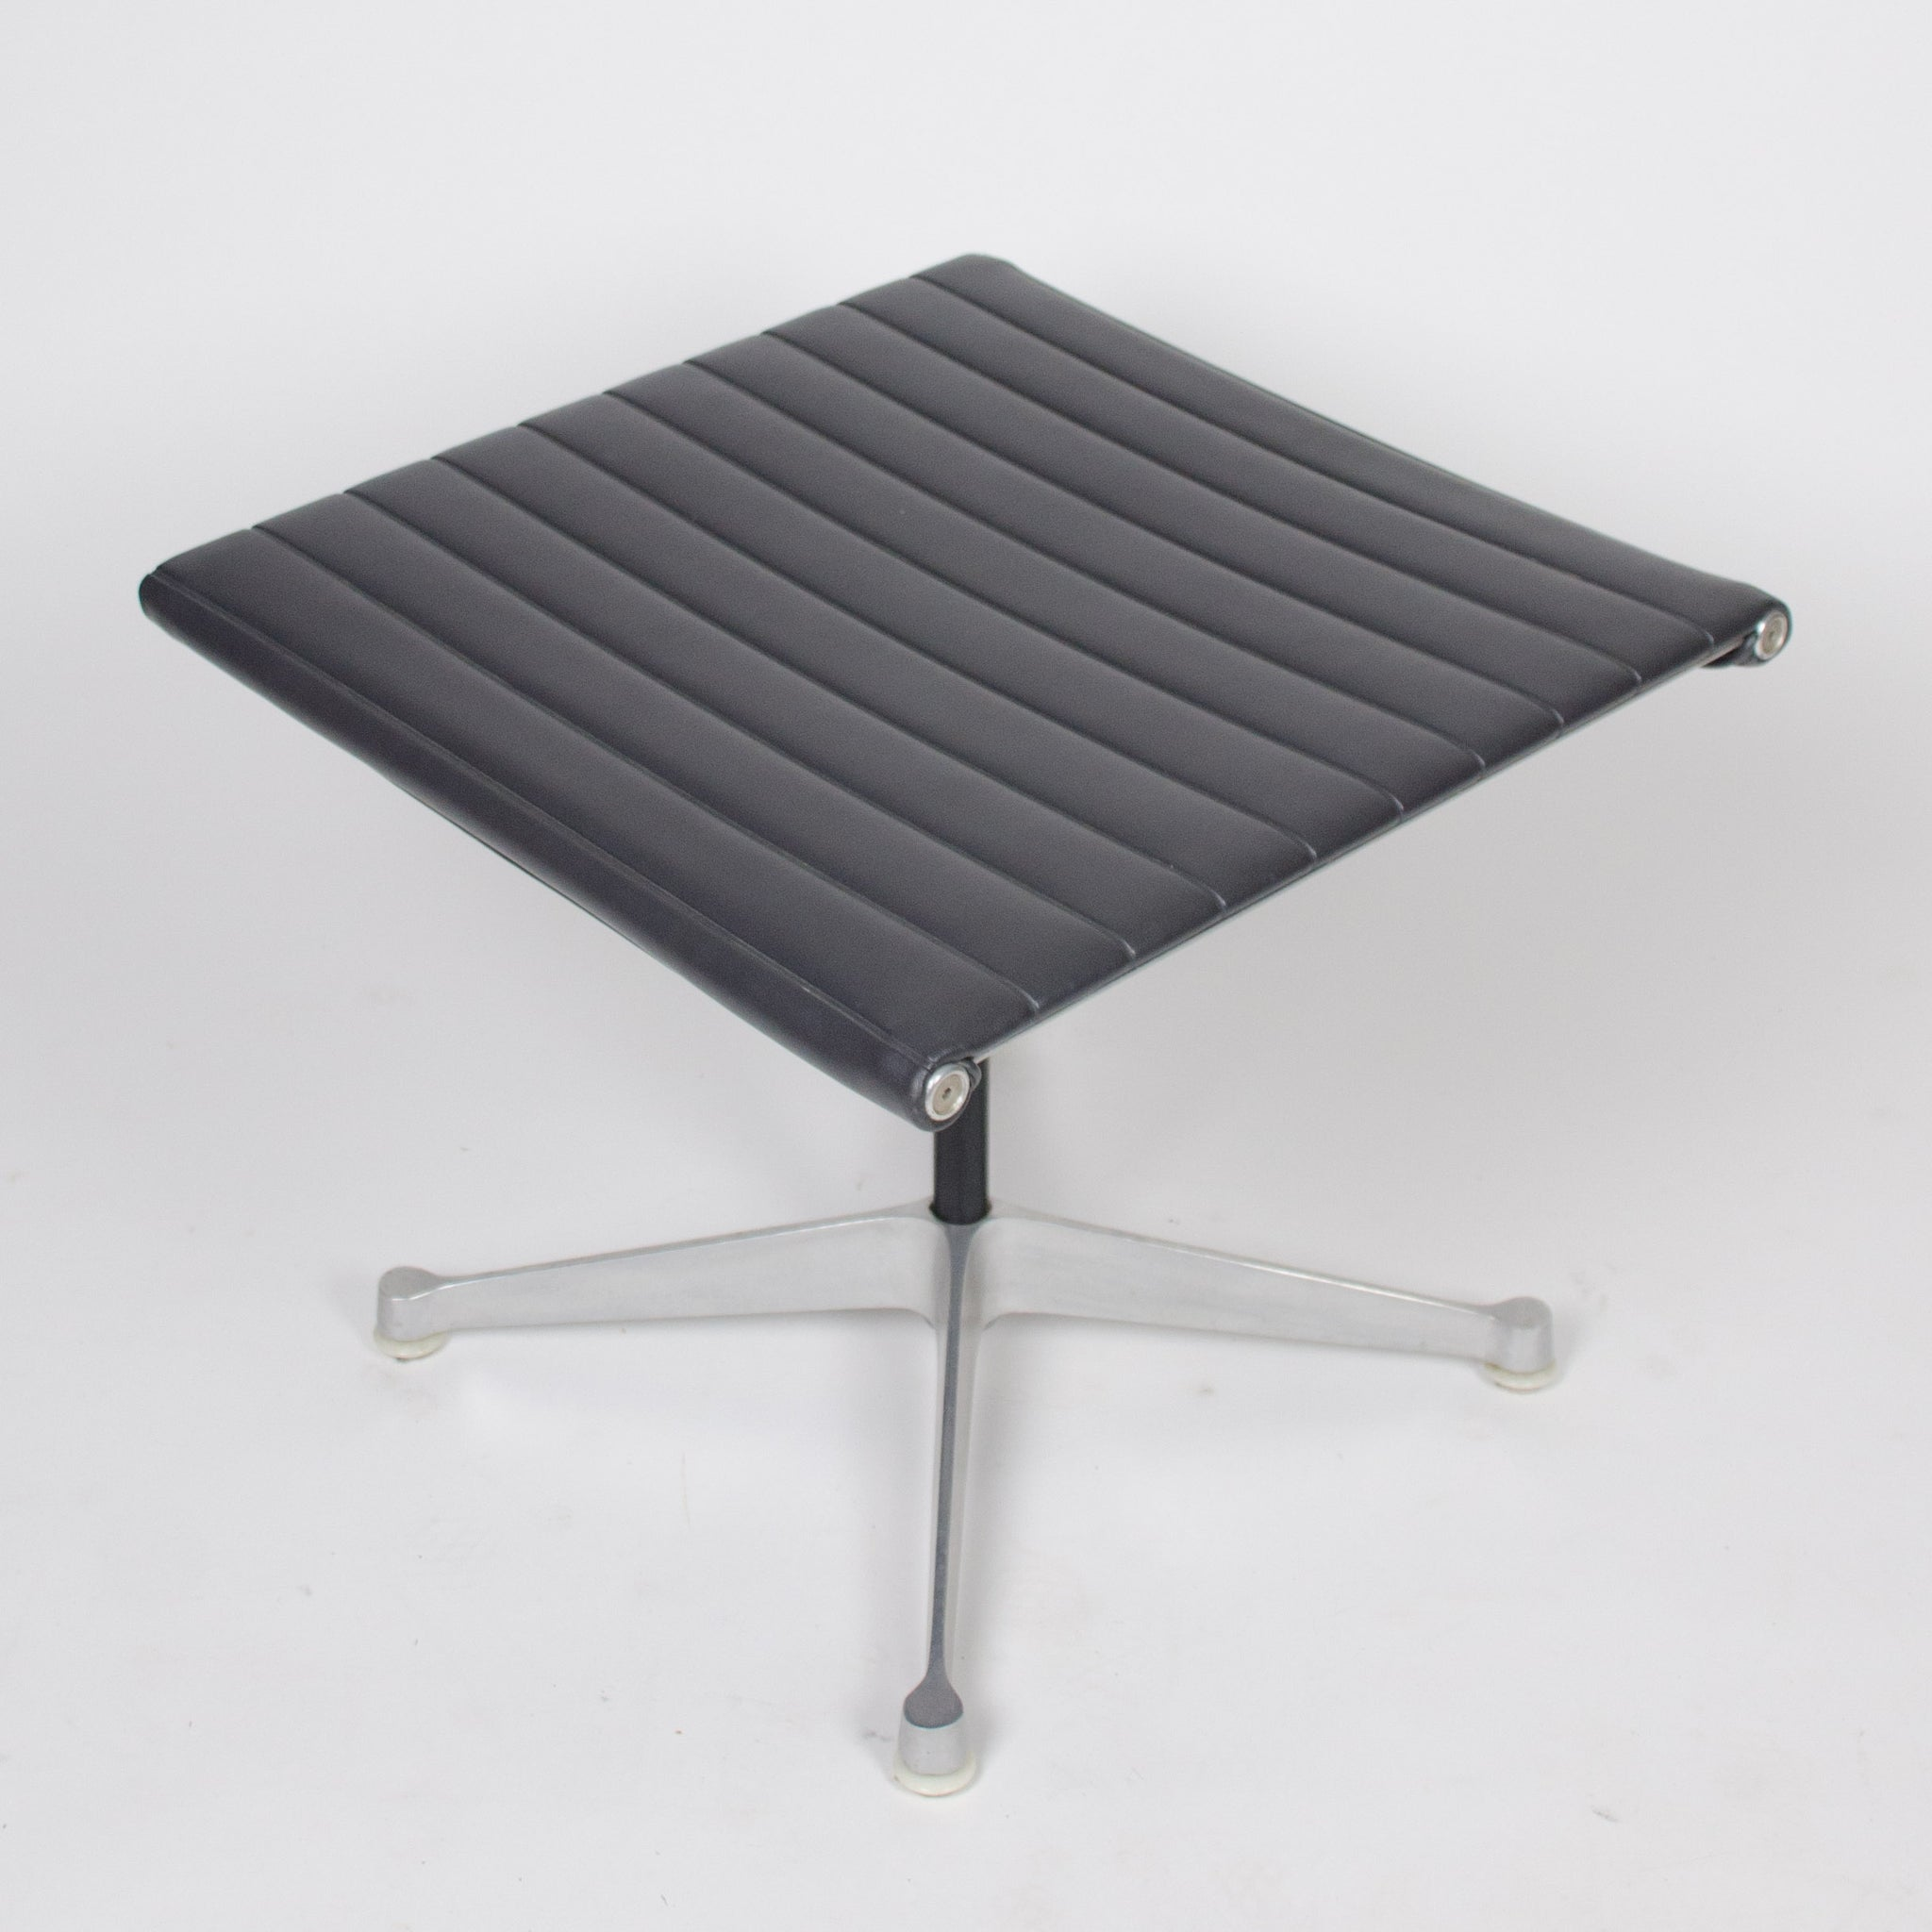 SOLD 1958 PATENT PENDING Eames Herman Miller Aluminum Lounge and Ottoman